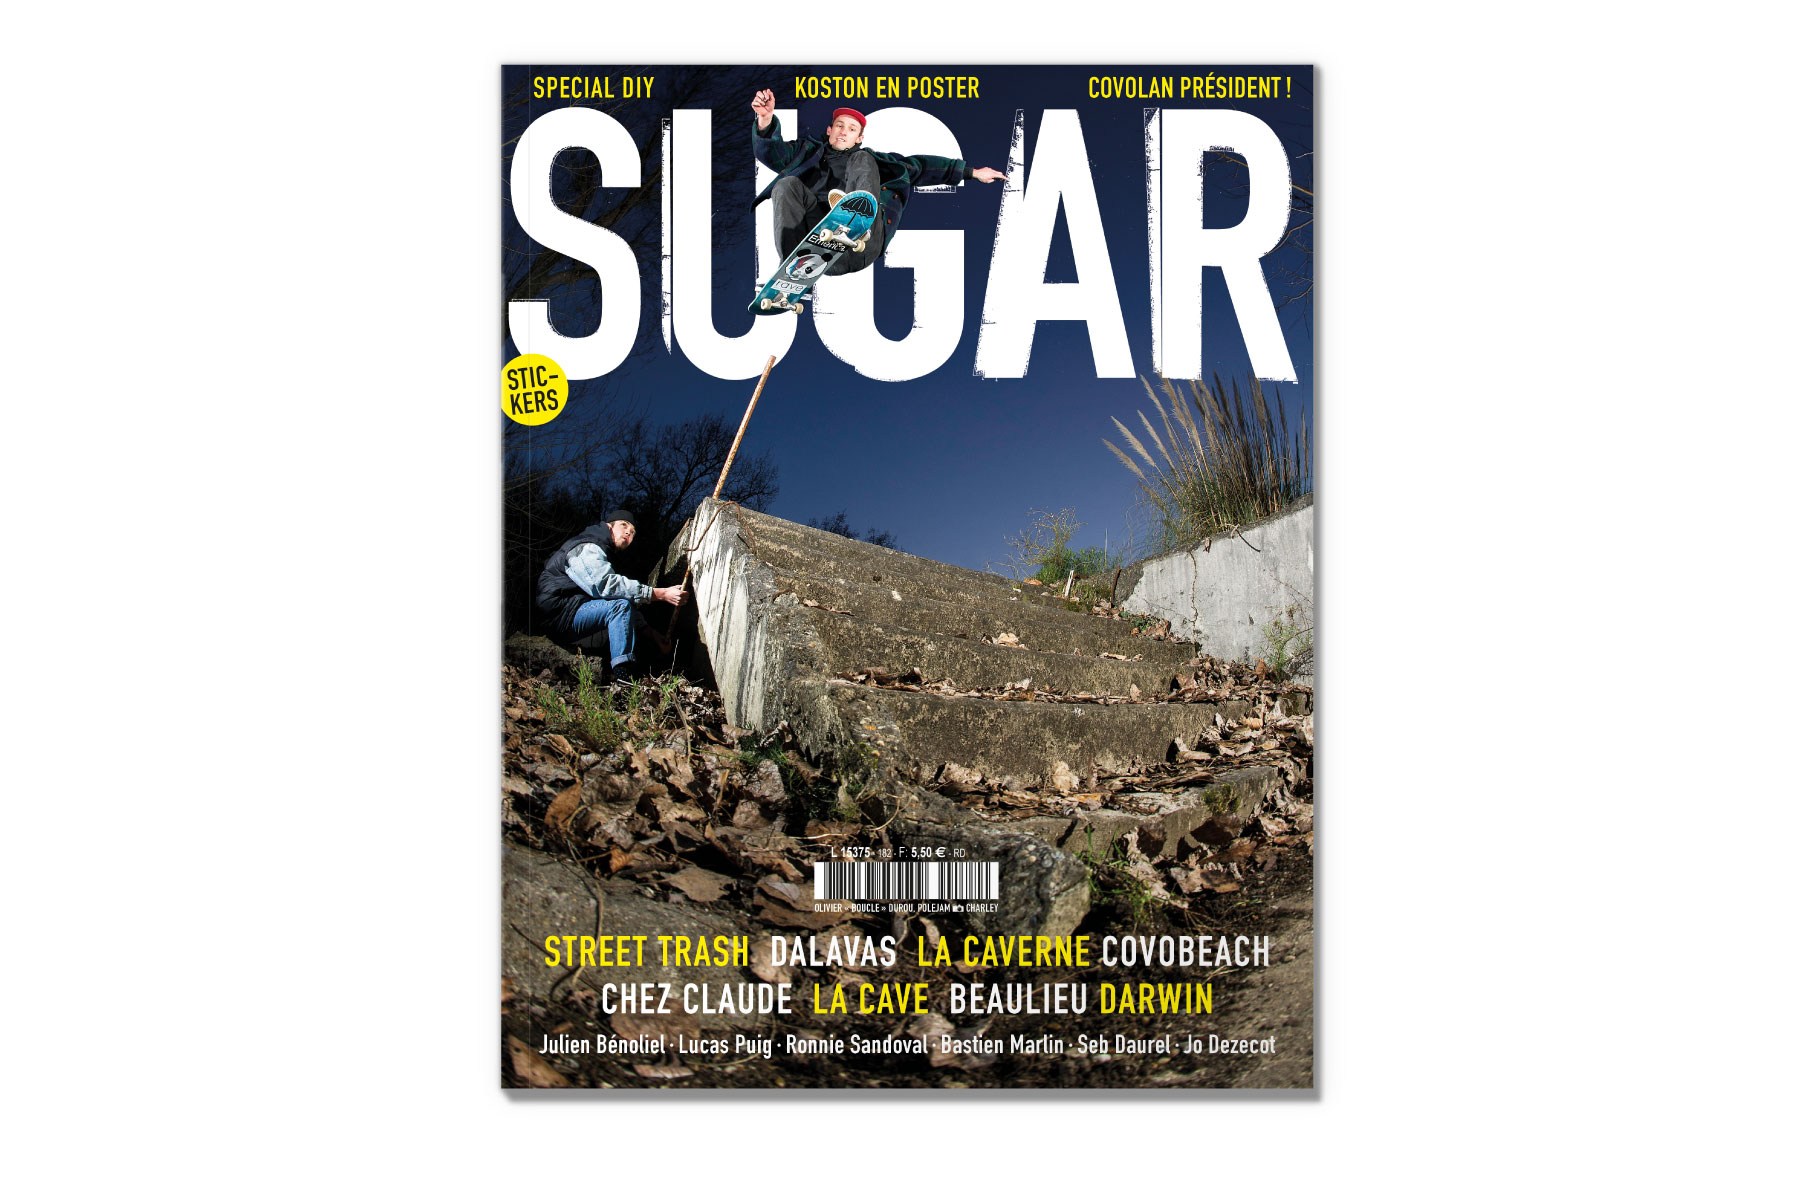 Sugar skateboard magazine 182 DIY